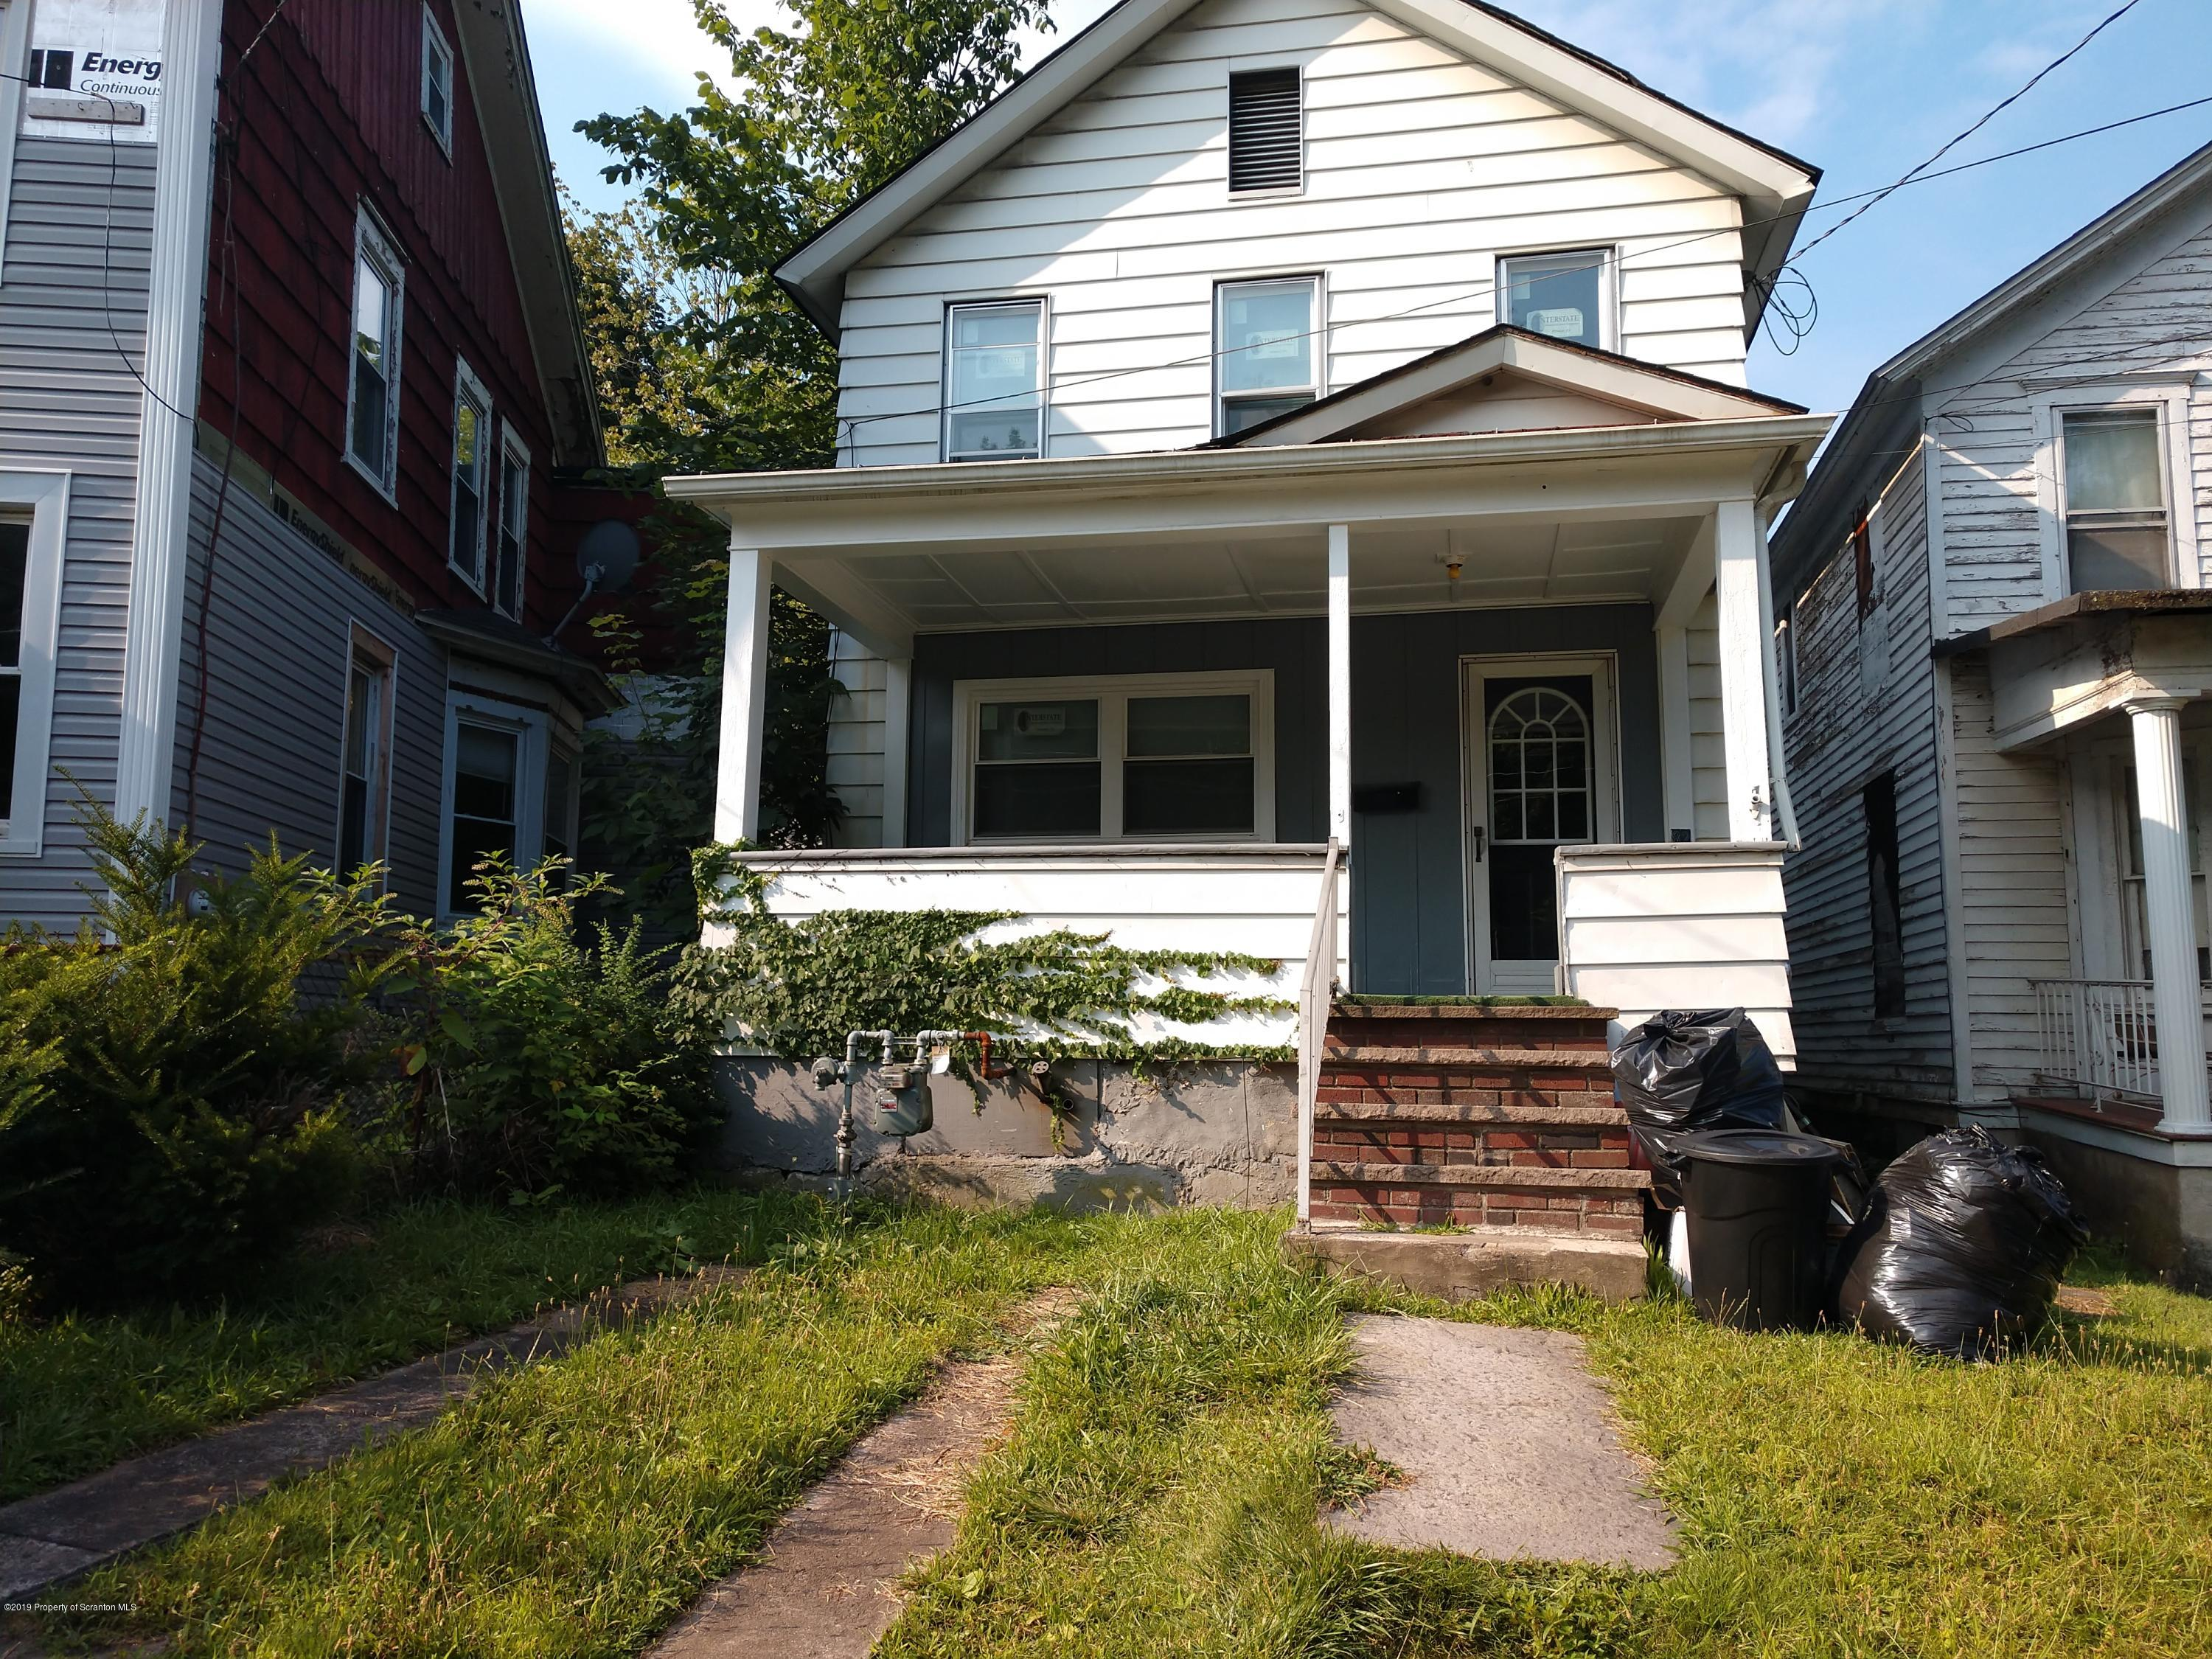 82 Brook St, Carbondale, Pennsylvania 18407, 3 Bedrooms Bedrooms, 7 Rooms Rooms,1 BathroomBathrooms,Single Family,For Sale,Brook,19-3772